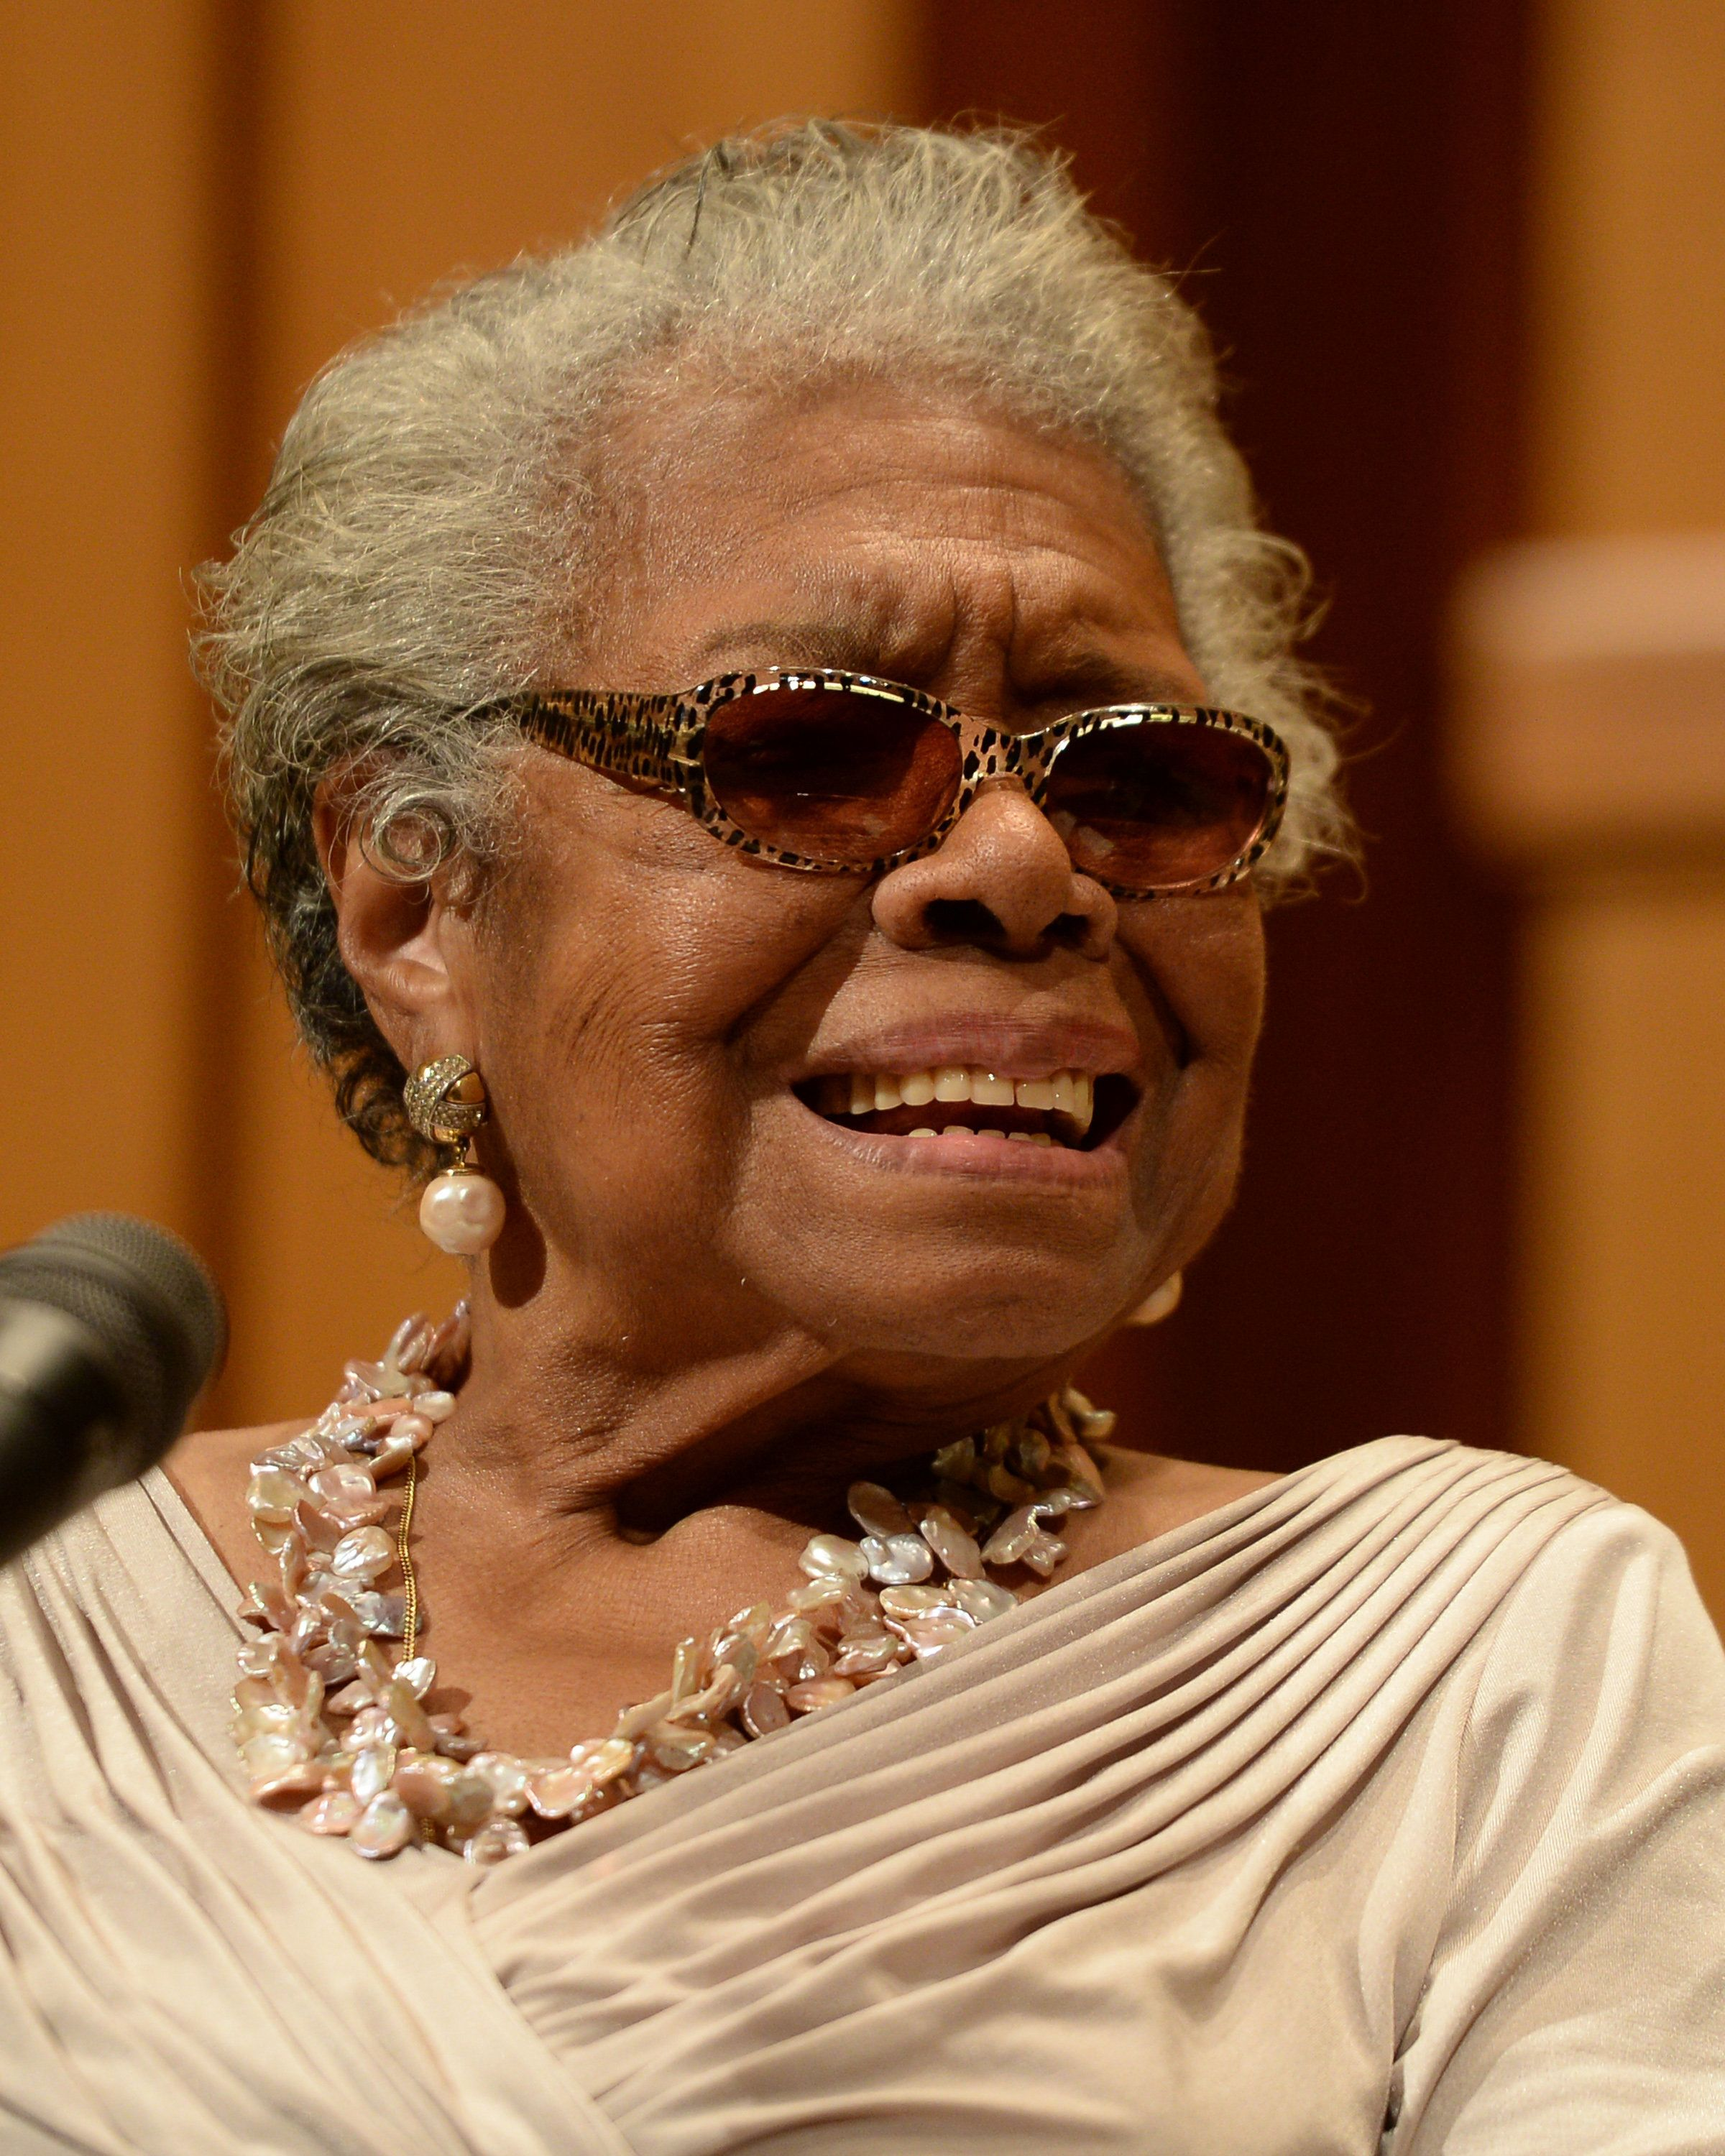 BOCA RATON, FL - JANUARY 16: Dr. Maya Angelou speaks at Congregation B nai Israel on January 16, 2014 in Boca Raton, Florida. (Photo by Larry Marano/Getty Images)